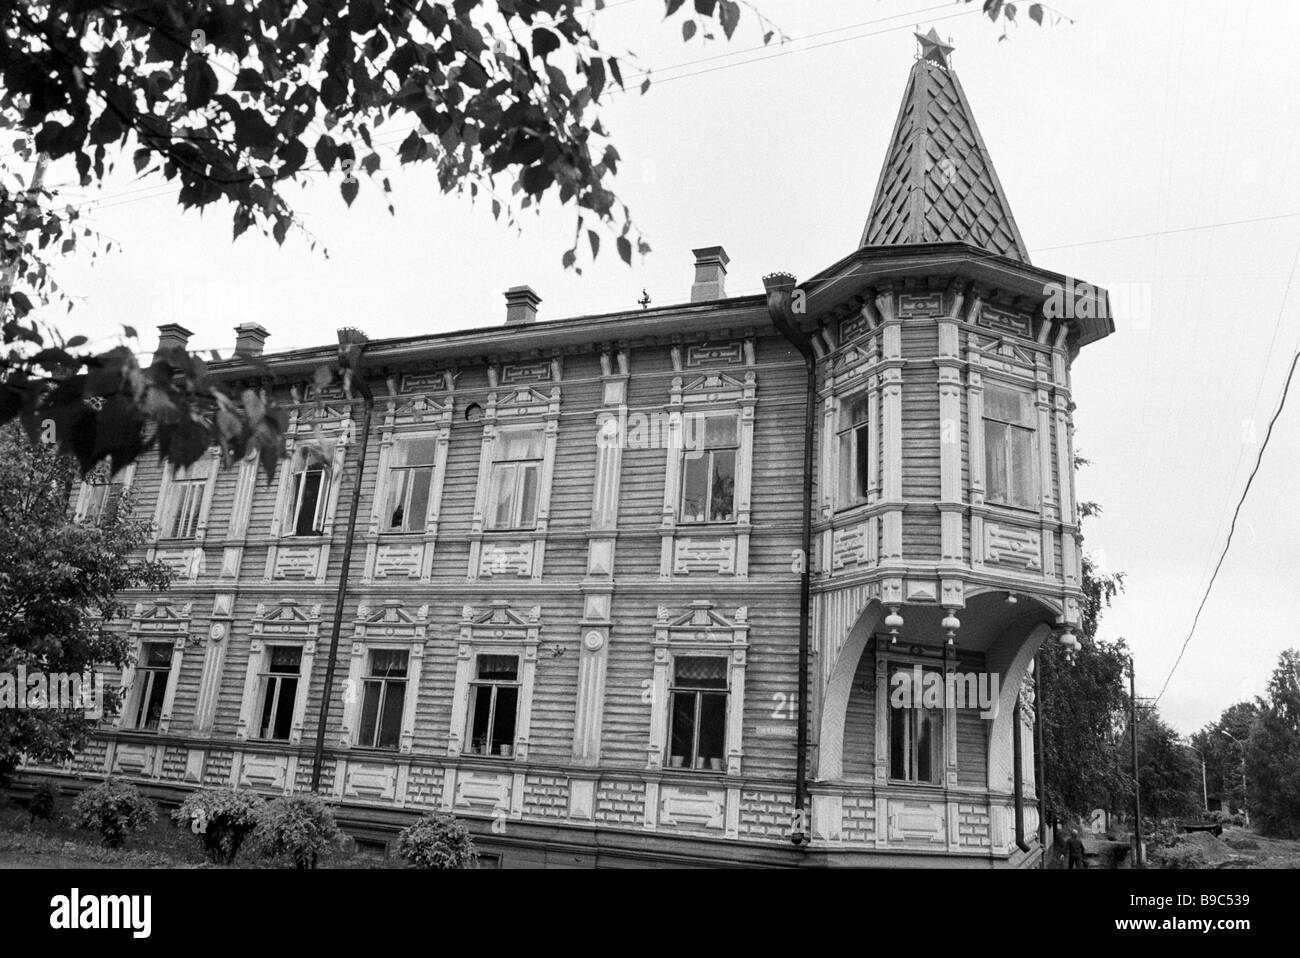 Wooden architecture relic early 20th century - Stock Image